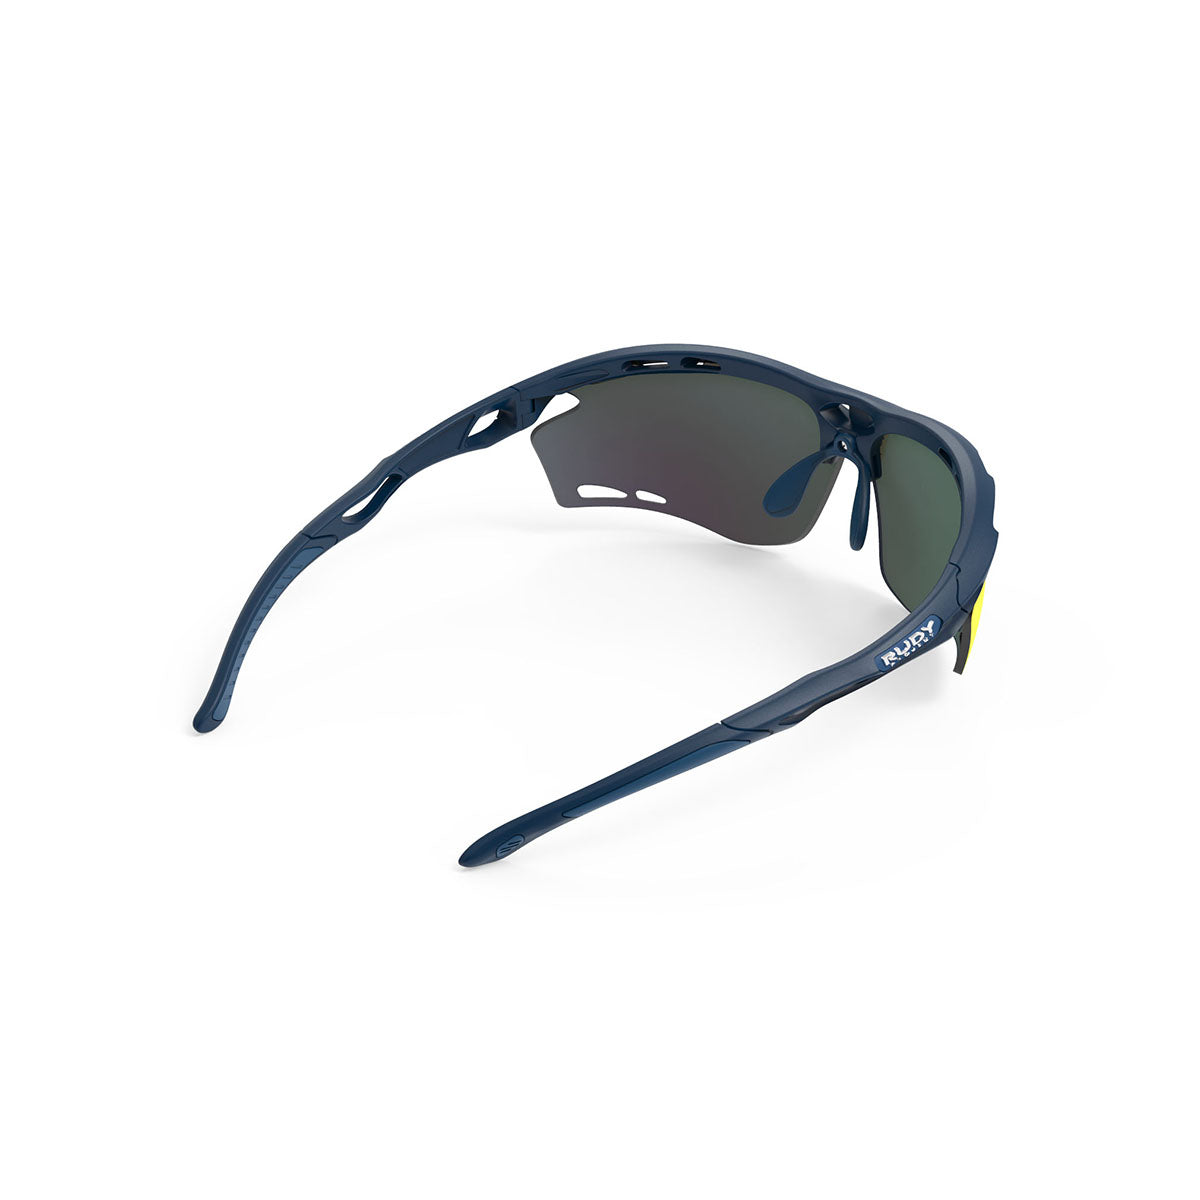 Rudy Project - Propulse - frame color: Navy Blue Matte - lens color: Multilaser Orange - Bumper Color:  - photo angle: Top Back Angle Variant Hover Image